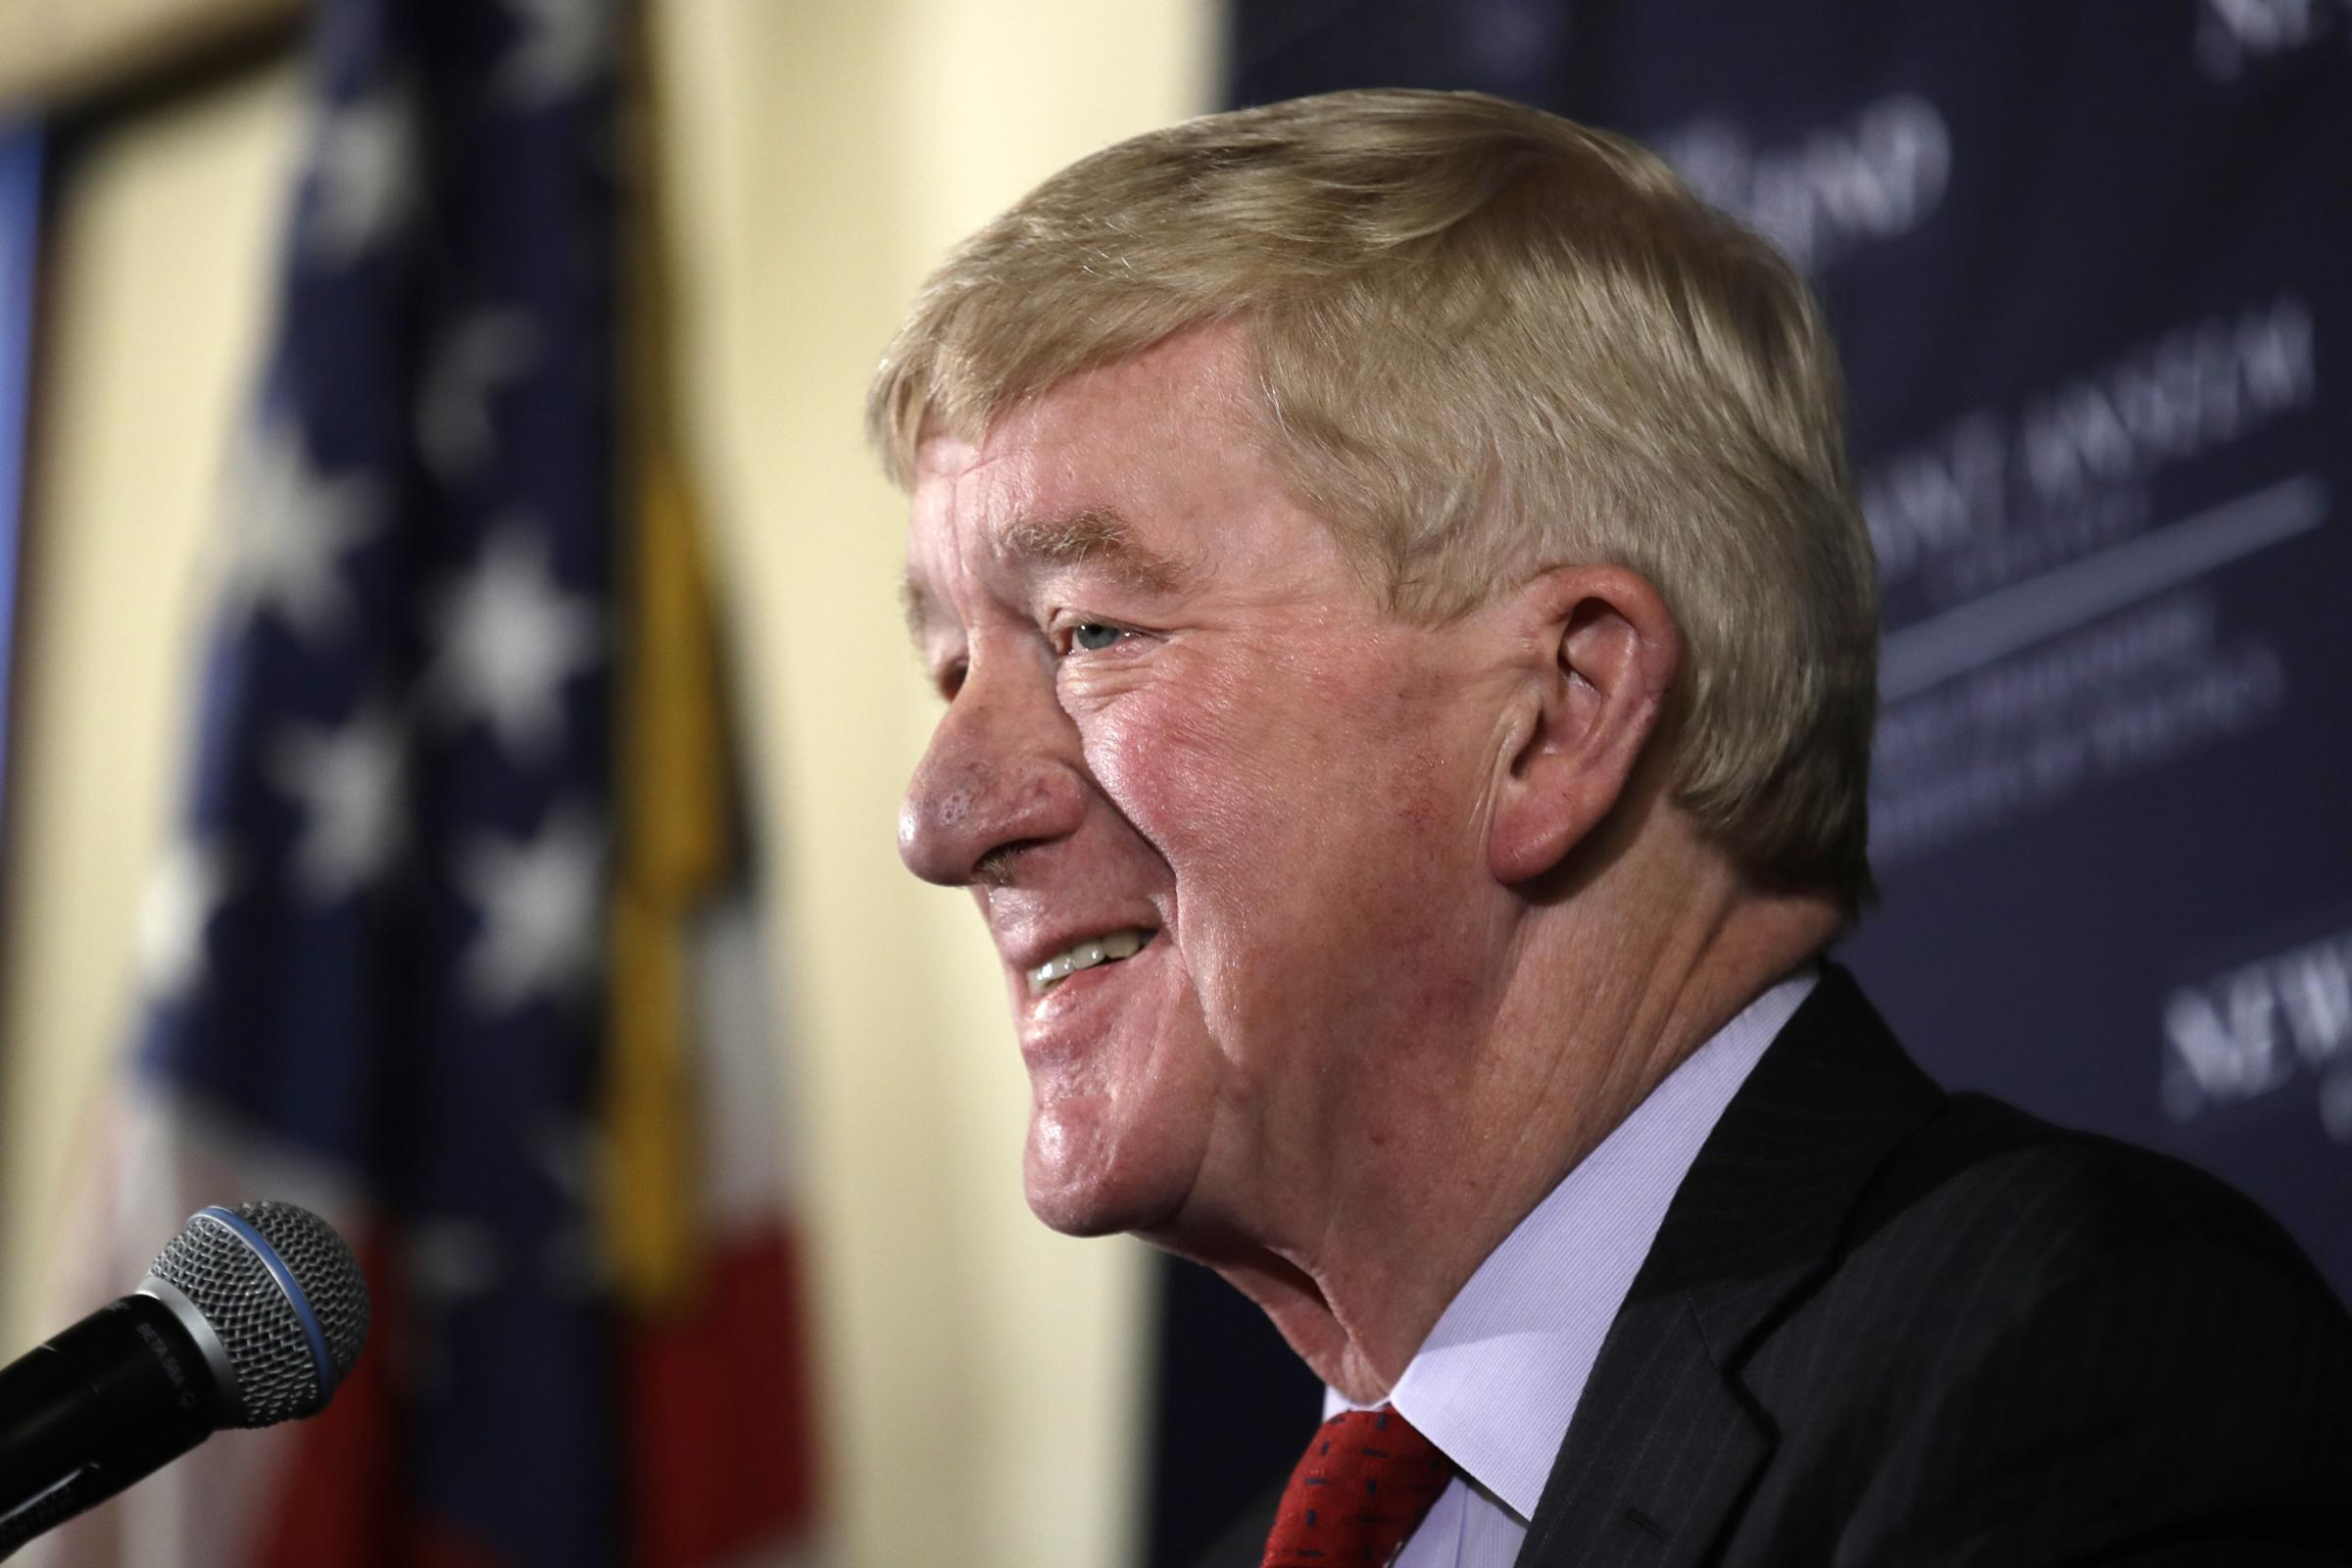 Former Massachusetts governor William Weld